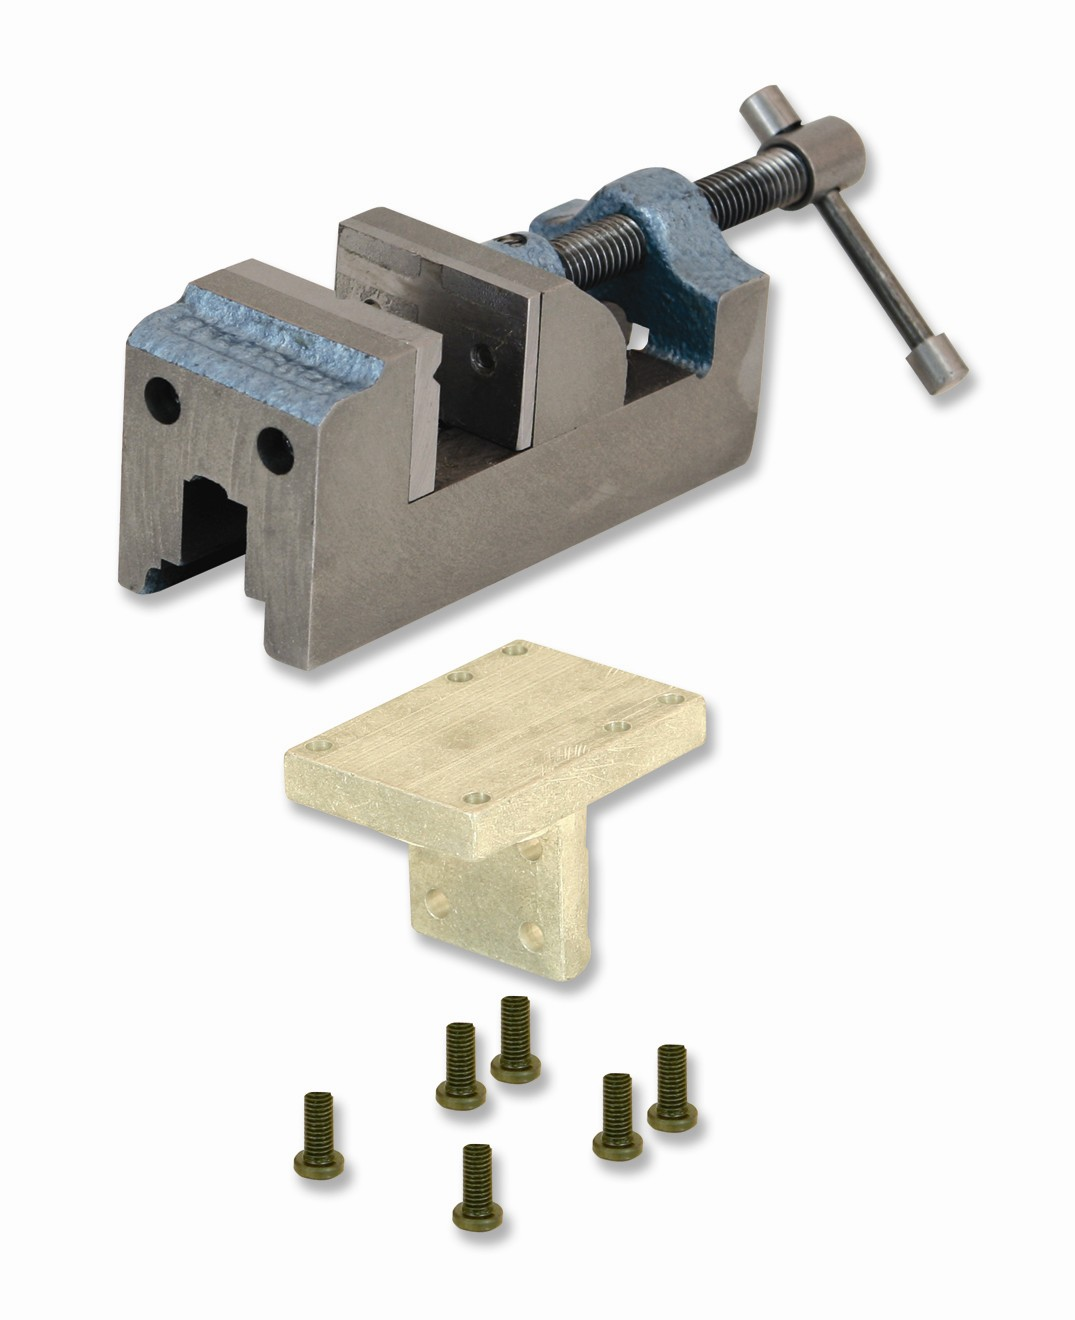 VersaCradle Vise with Adapter